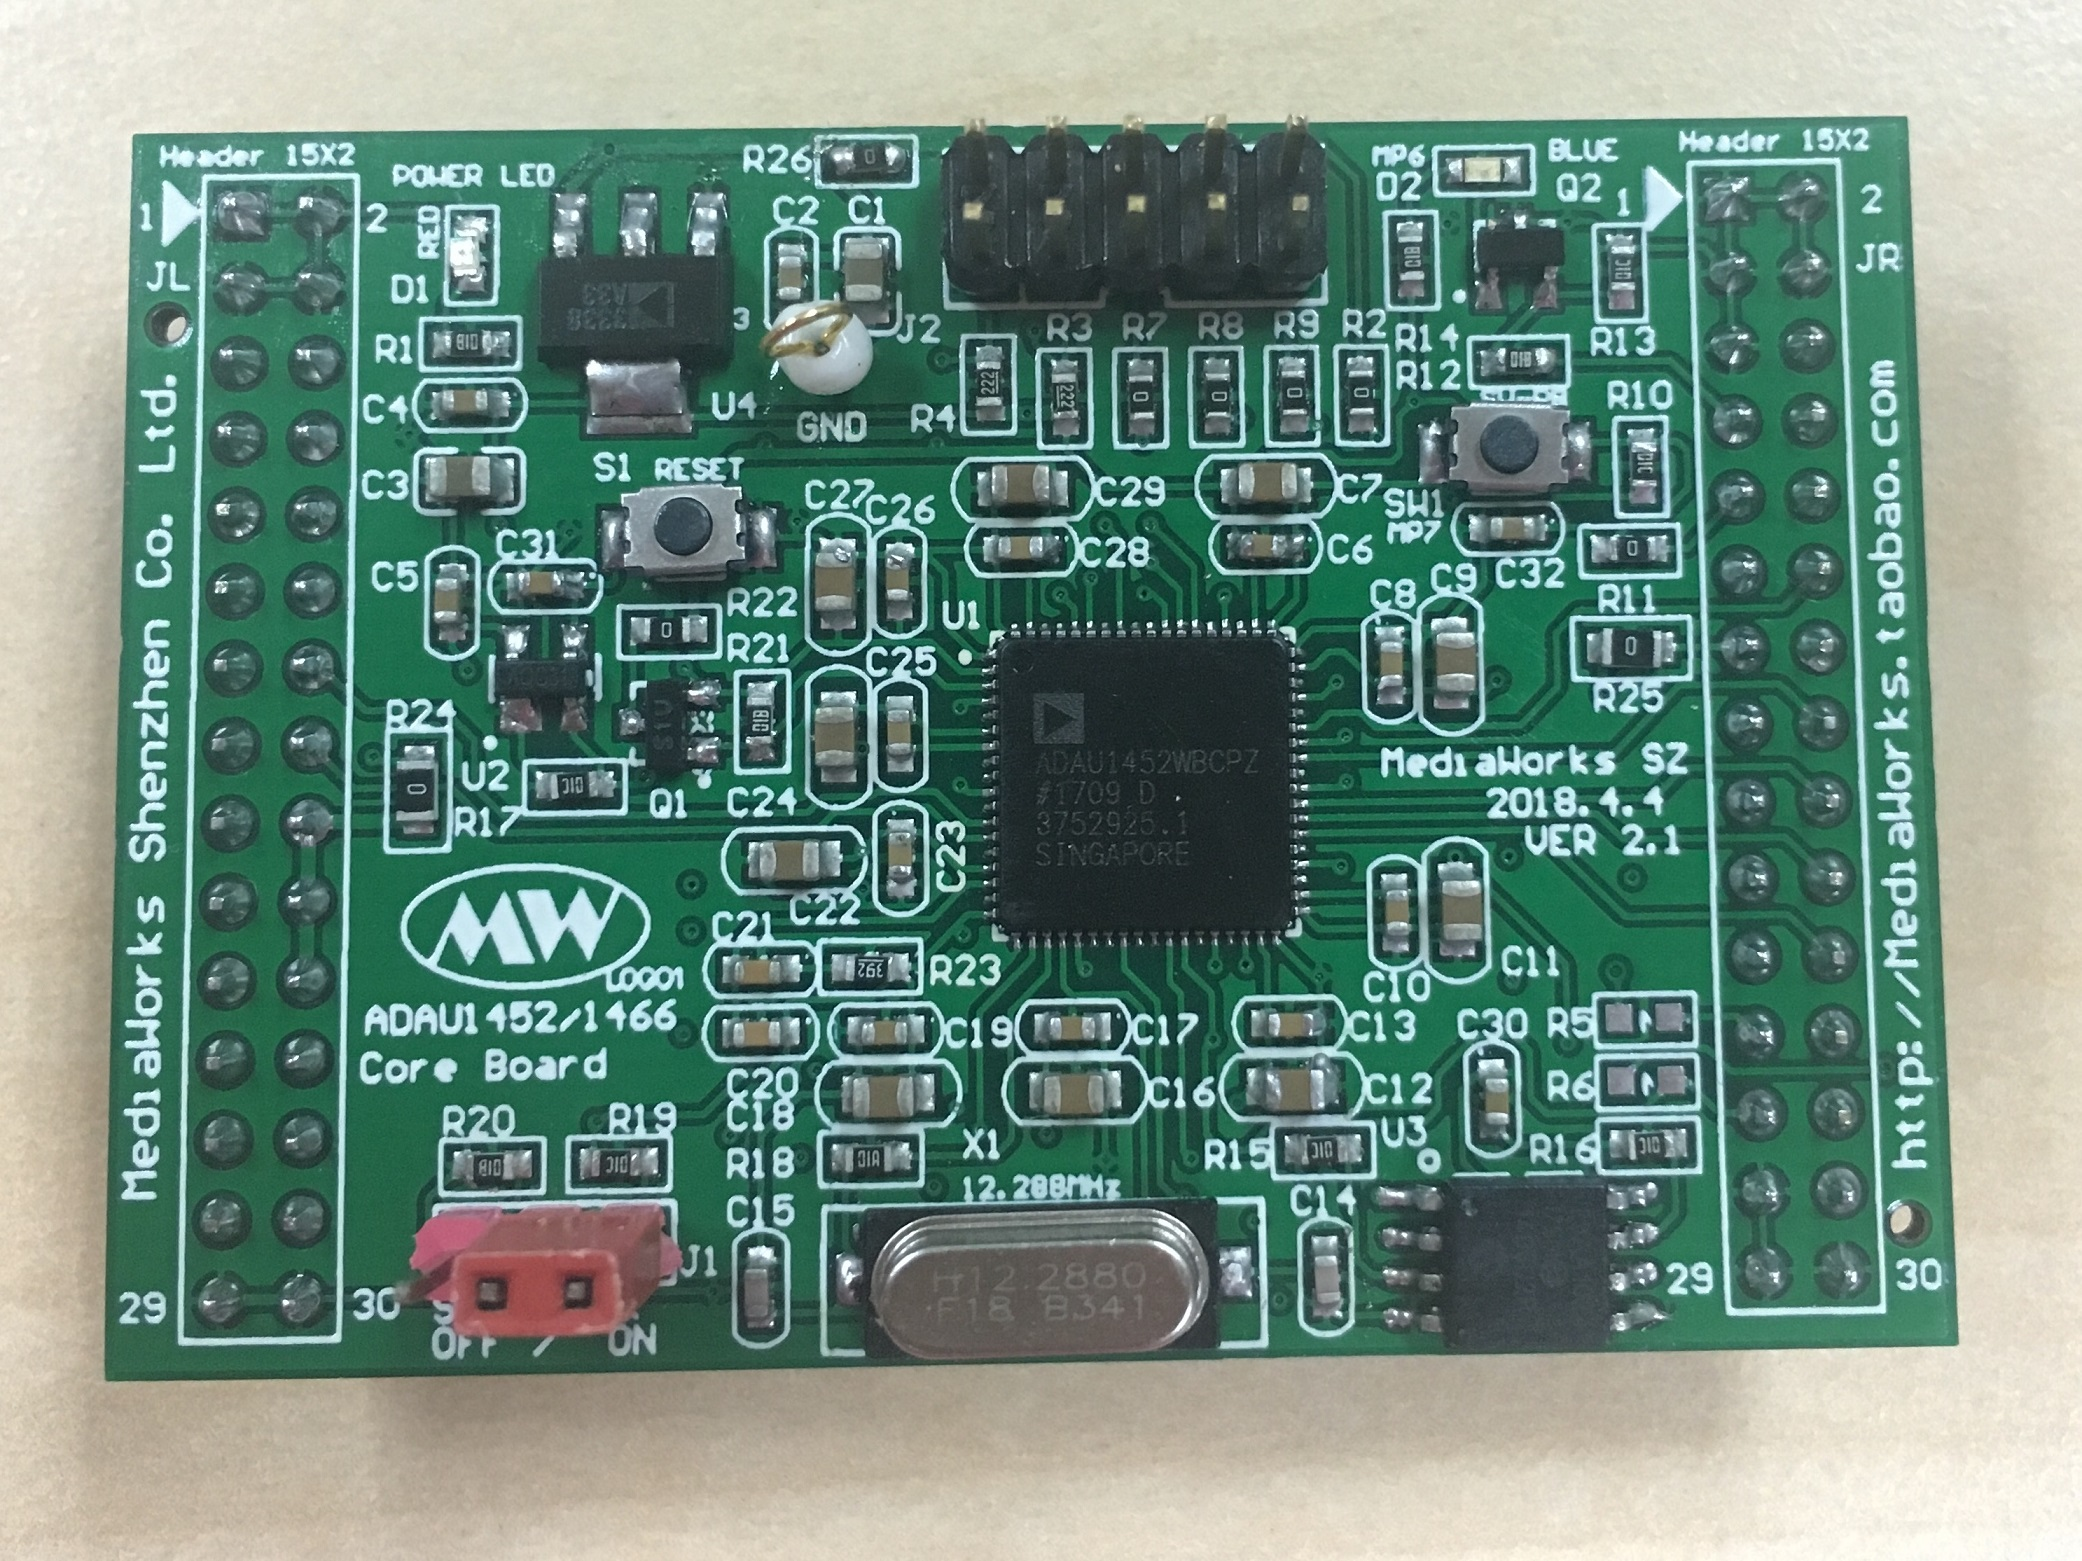 SIGMADSP ADAU1452 Core Board (New)SIGMADSP ADAU1452 Core Board (New)